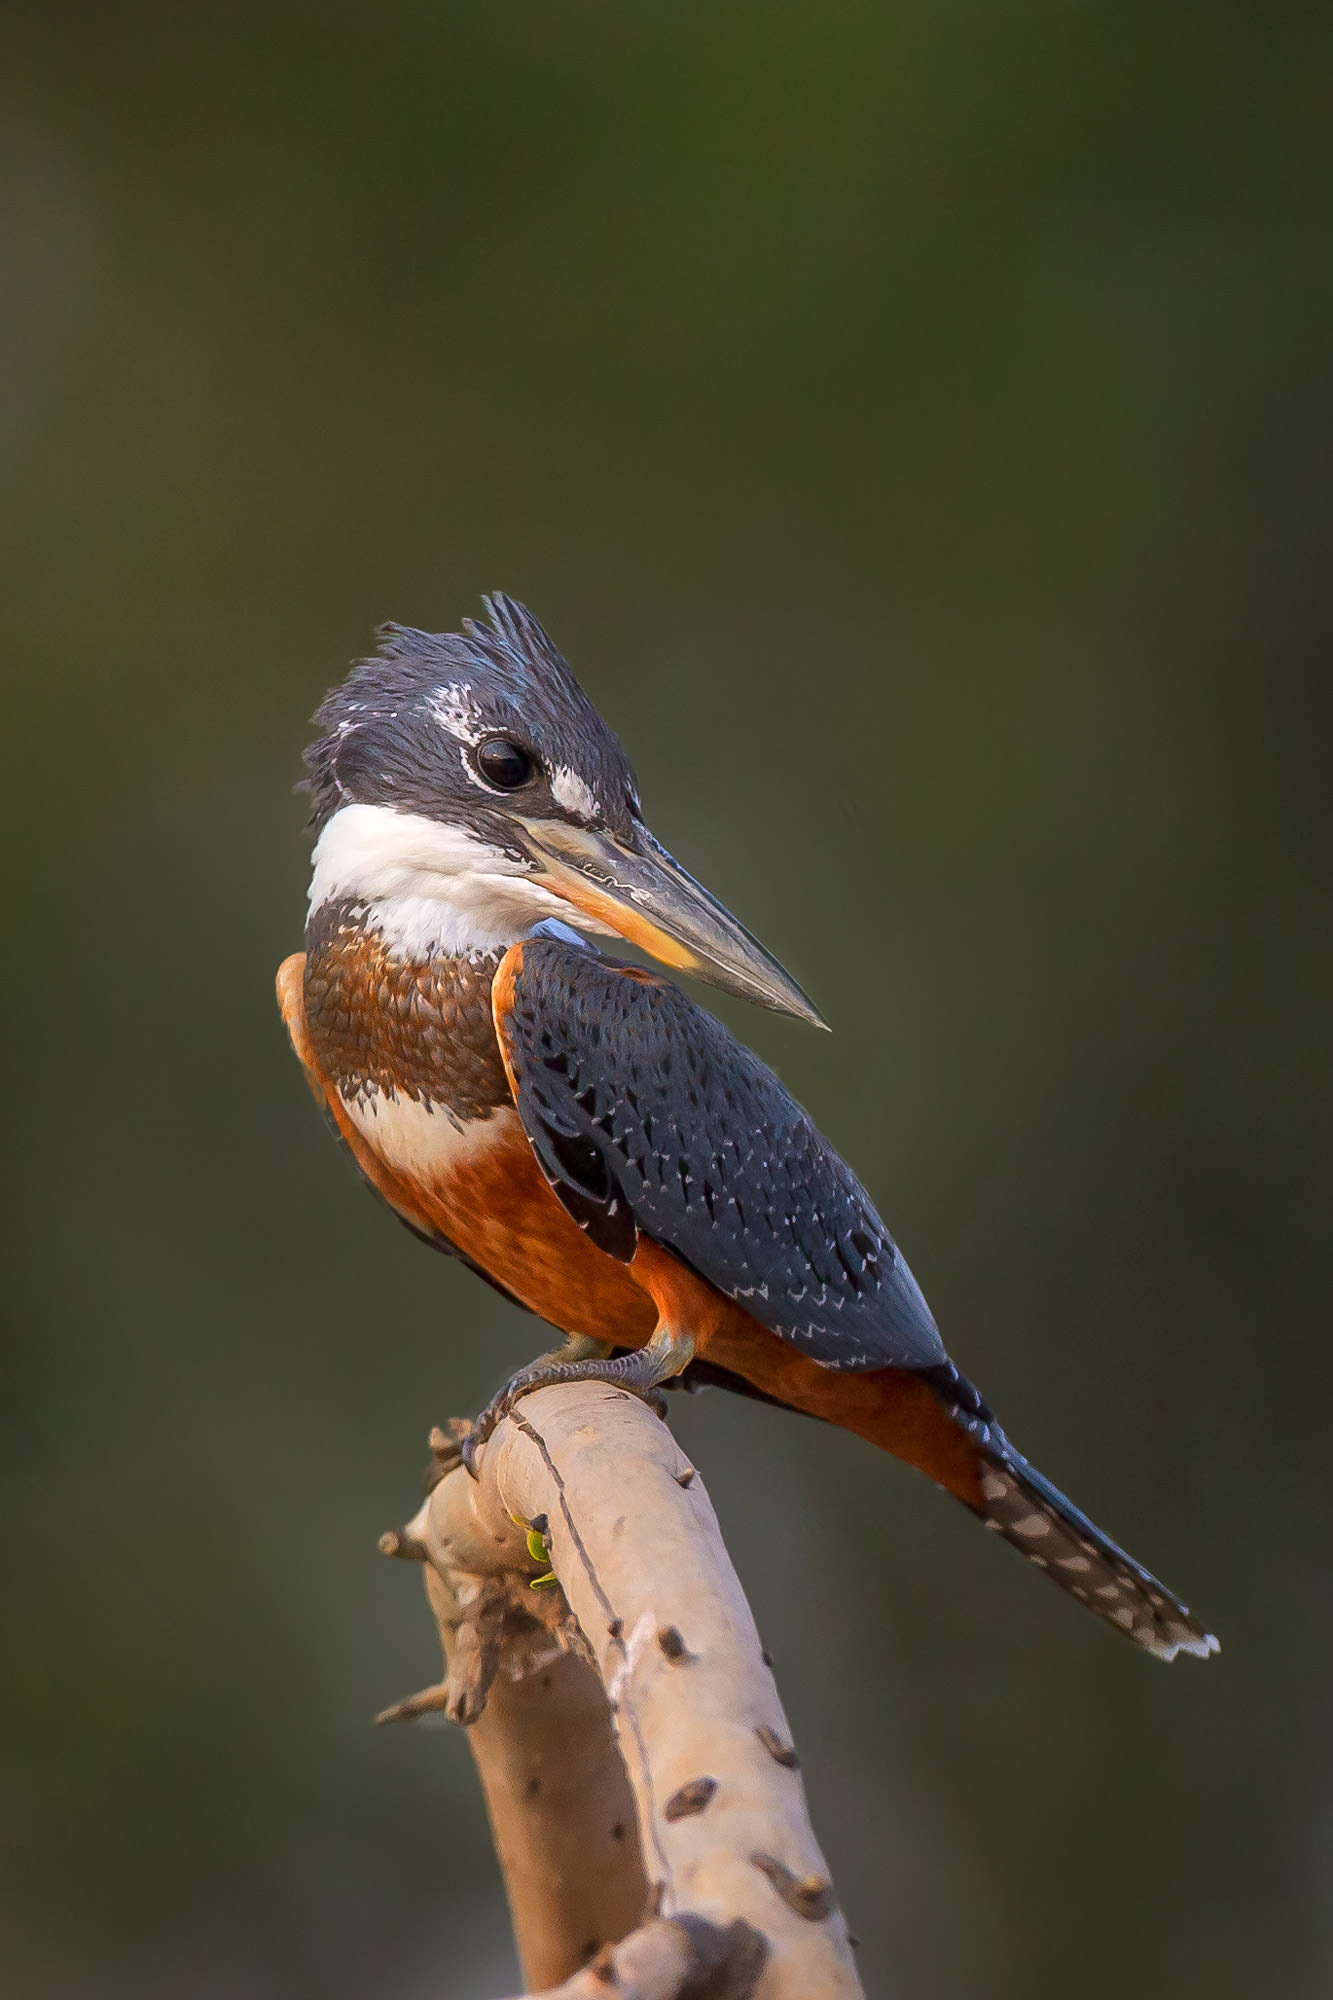 Kingfisher, Ringed Kingfisher, Brazil, photo